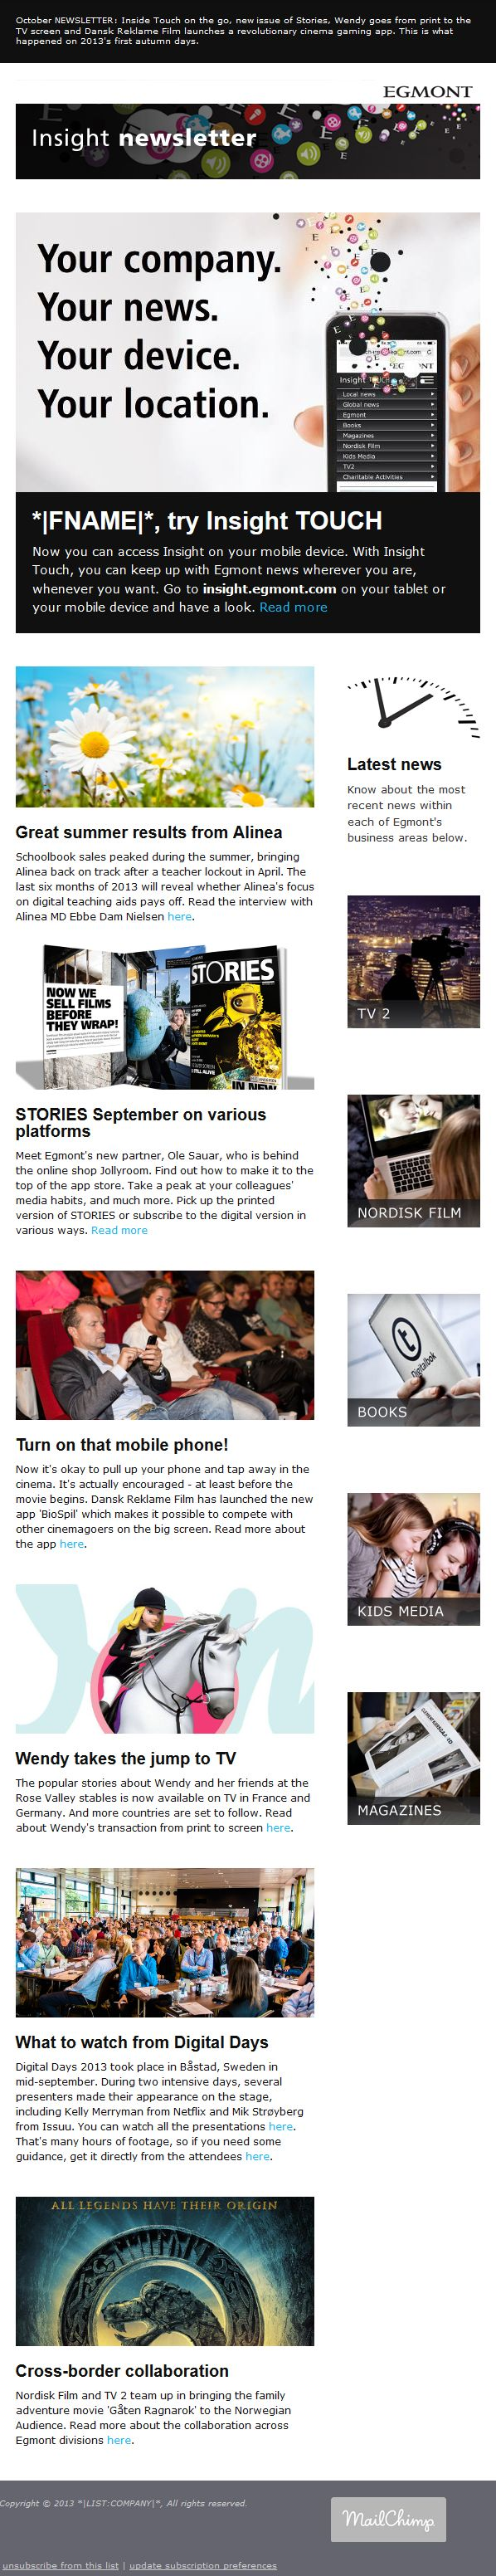 28 best images about Newsletter designs on Pinterest